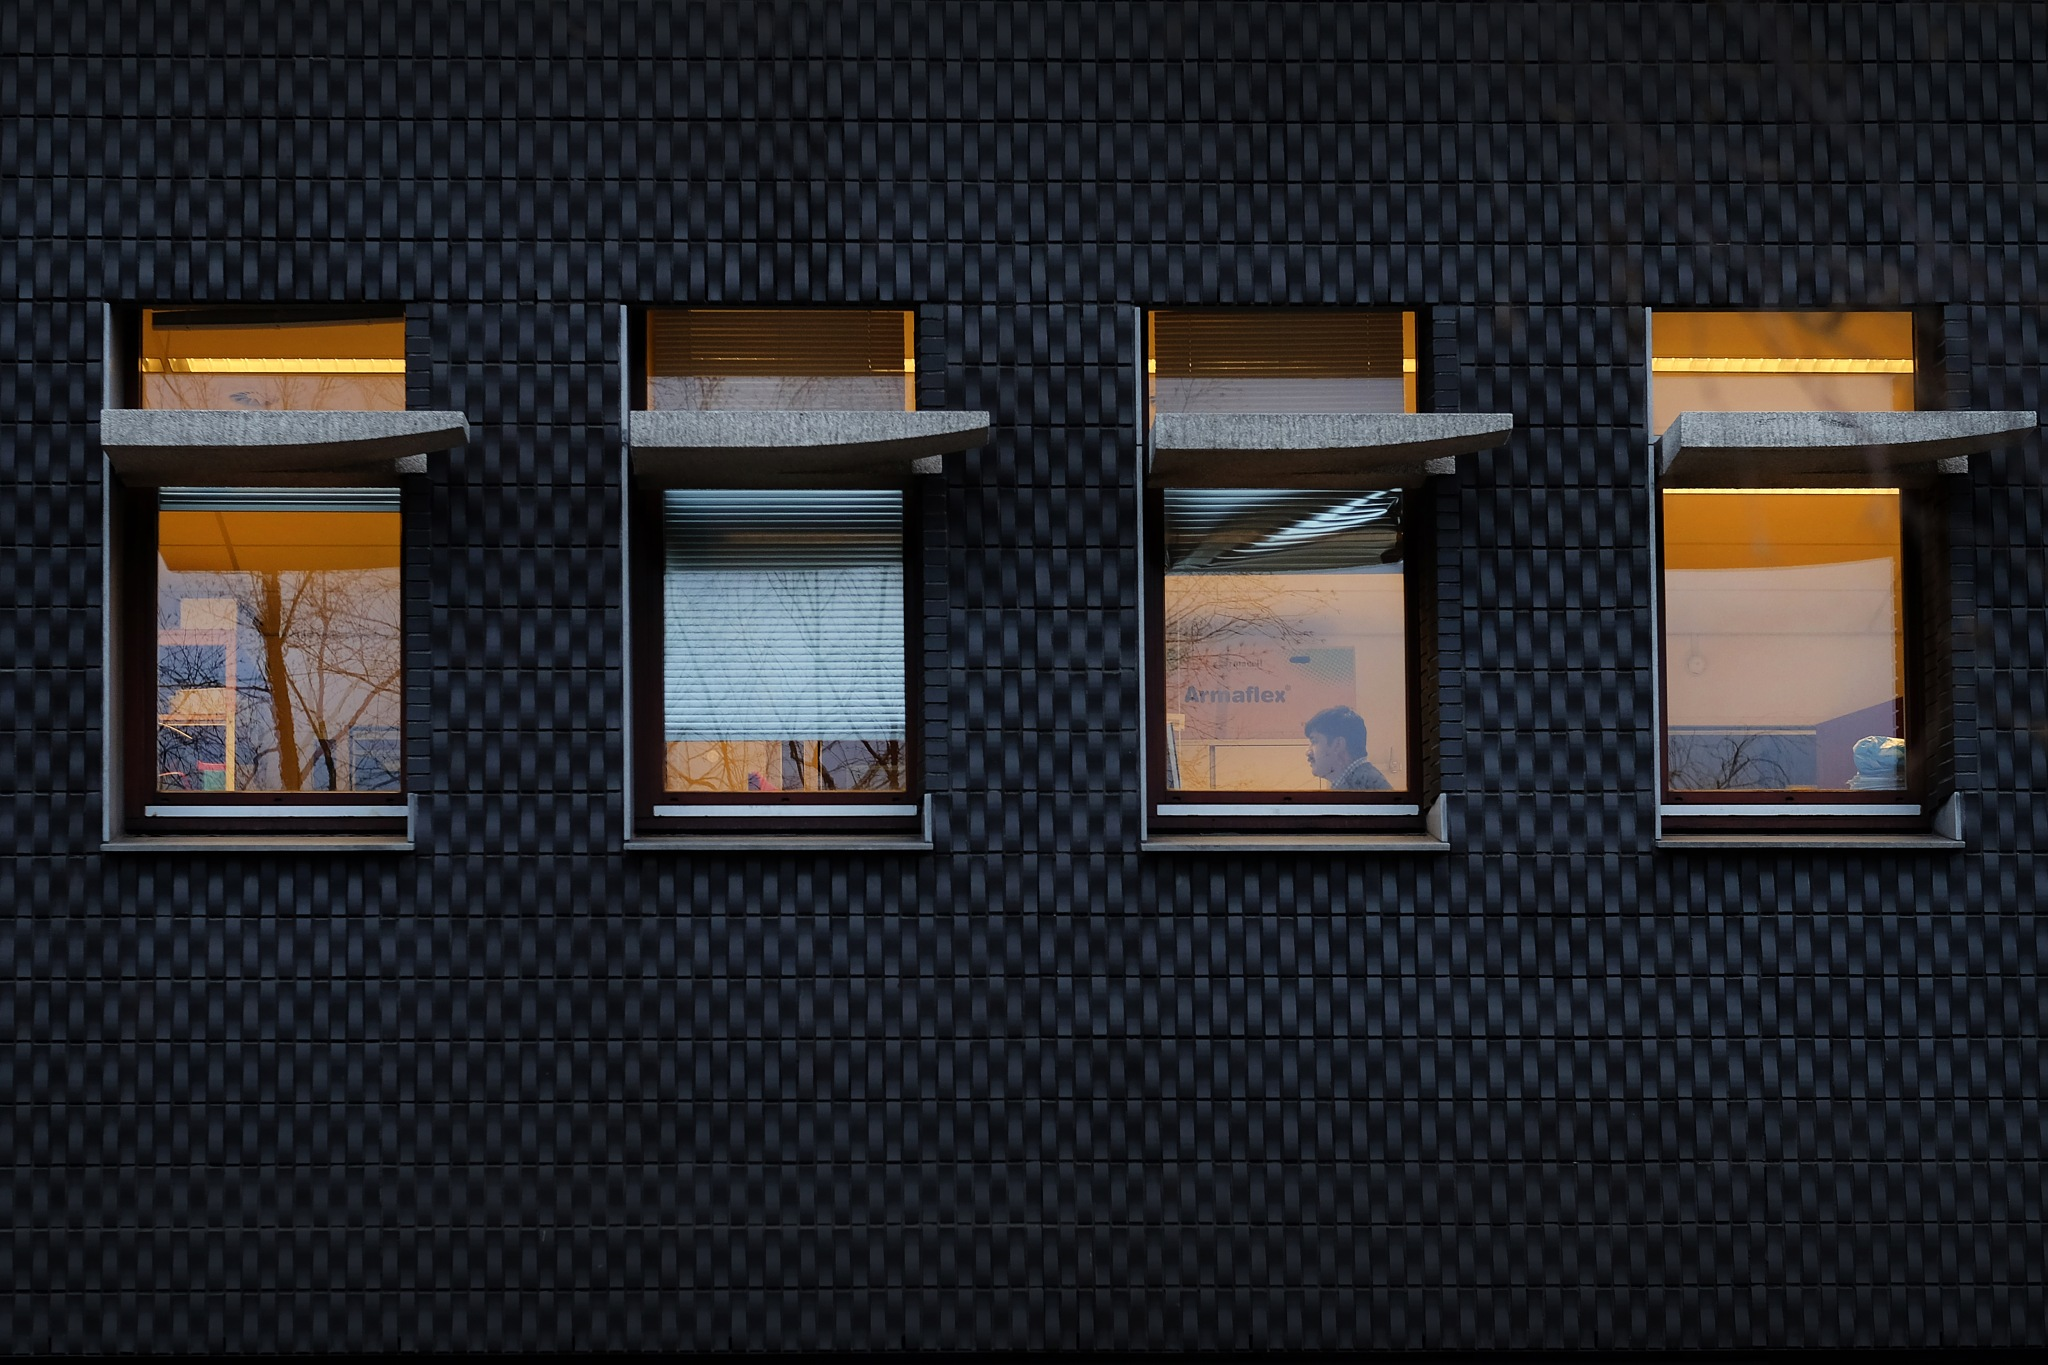 Four windows and an employee by Bram Busink